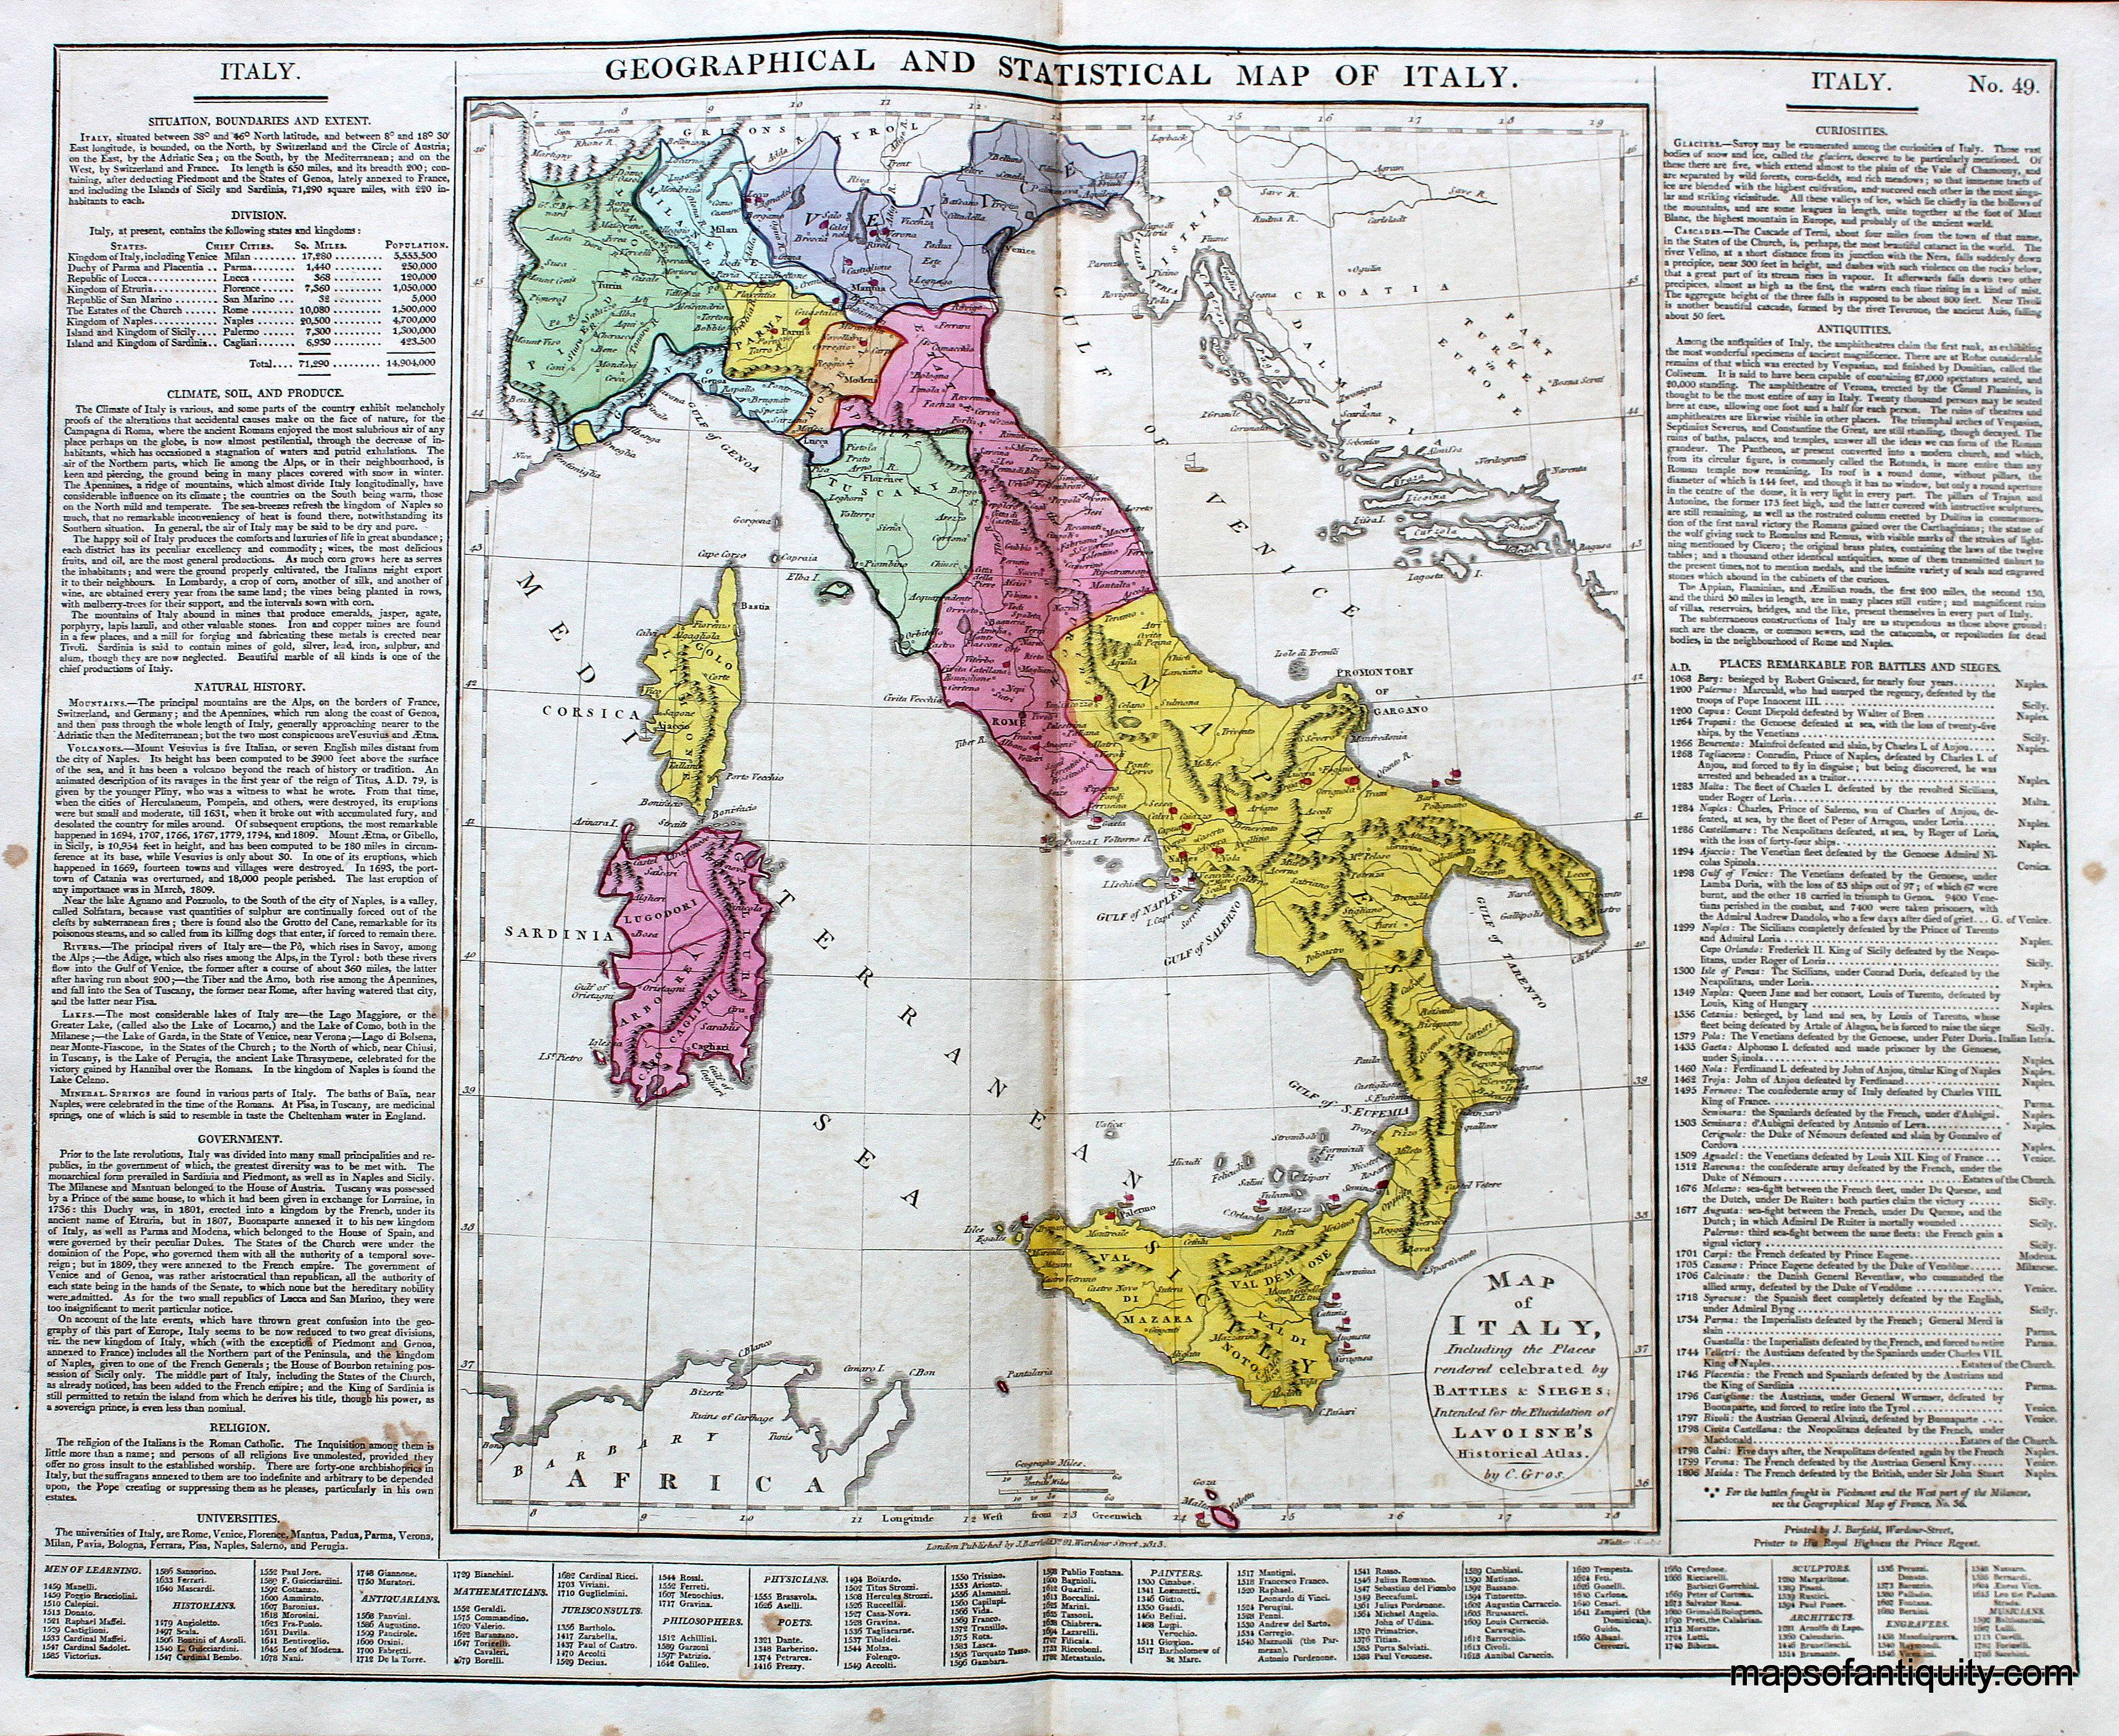 Antique 1828 Geographical And Statistical Map Of Italy Italy